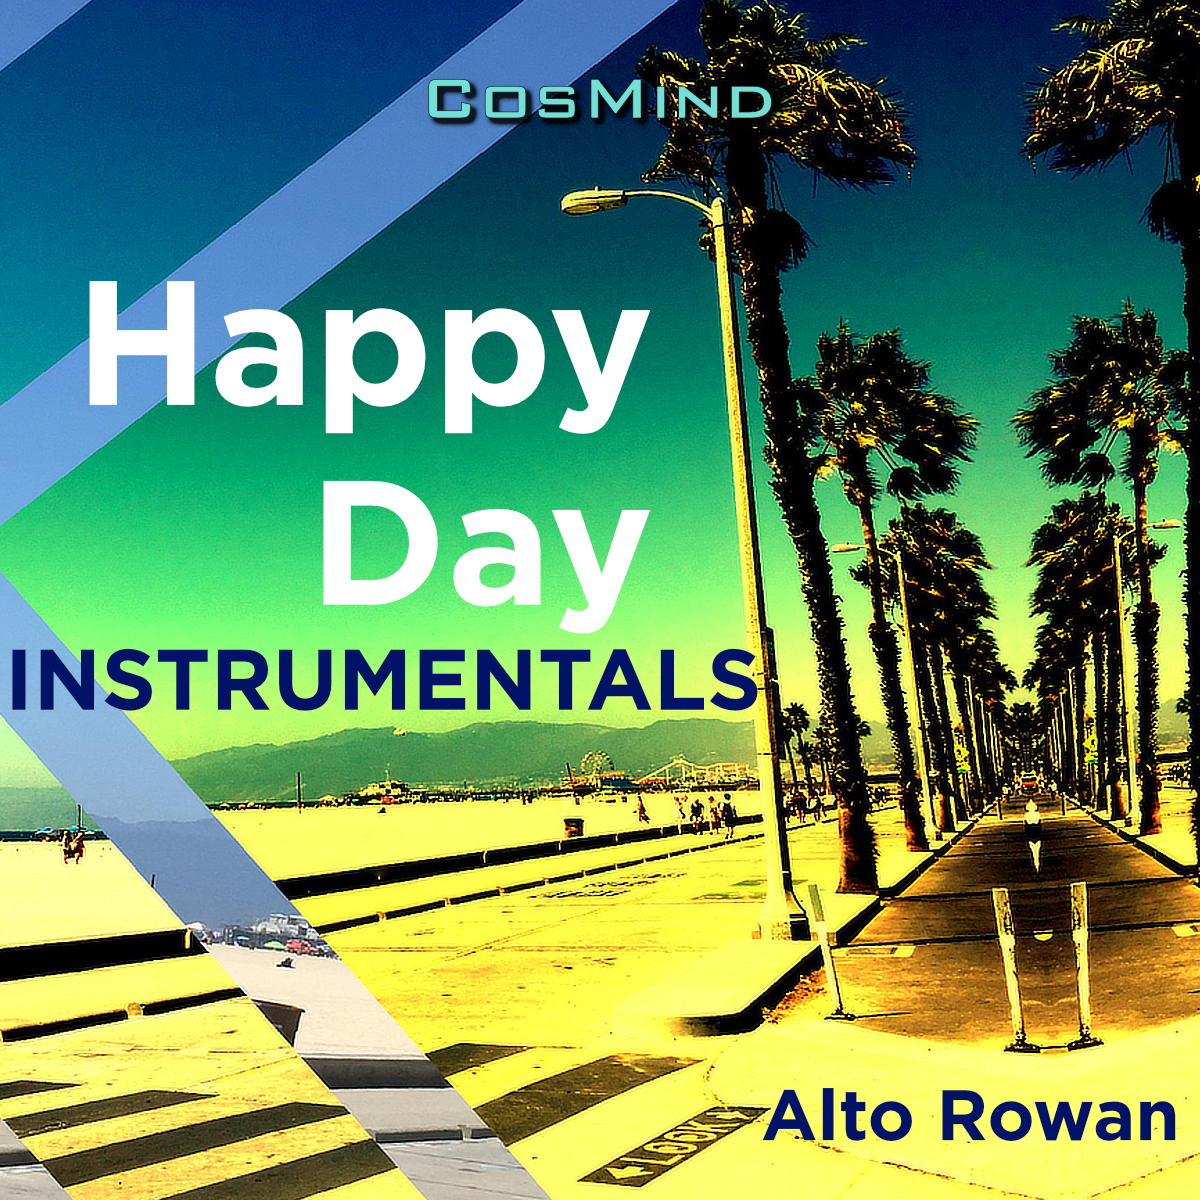 Happy Day Instrumentals